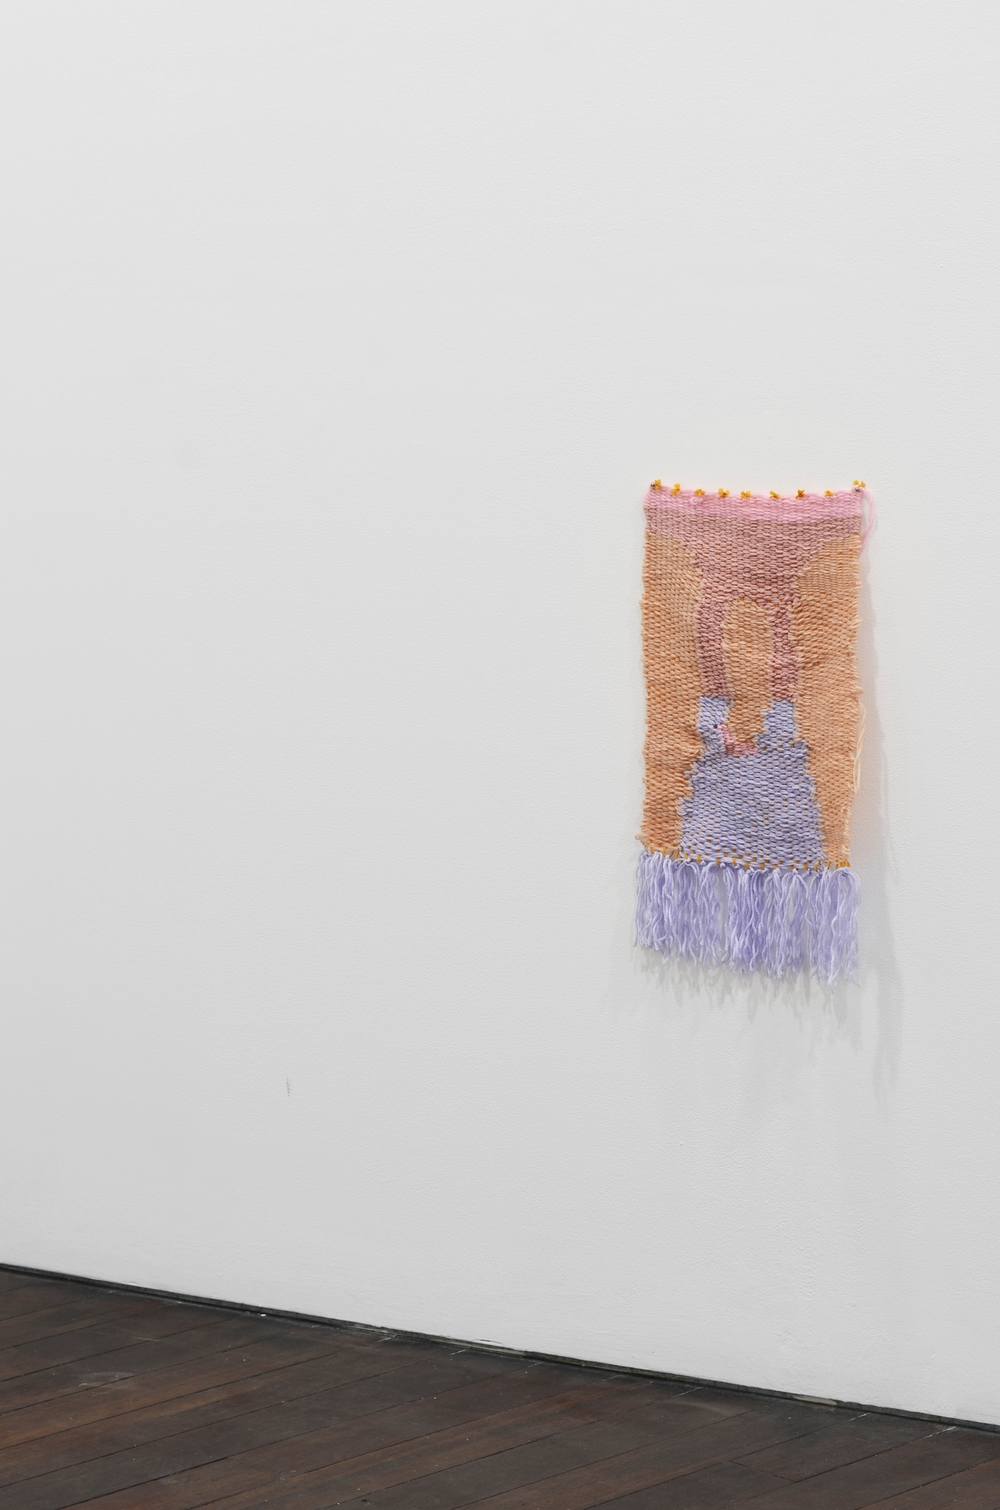 Do you like it? , 2015 Install Shot Wool 60 x 35cm  Photograph by Dan McCabe.